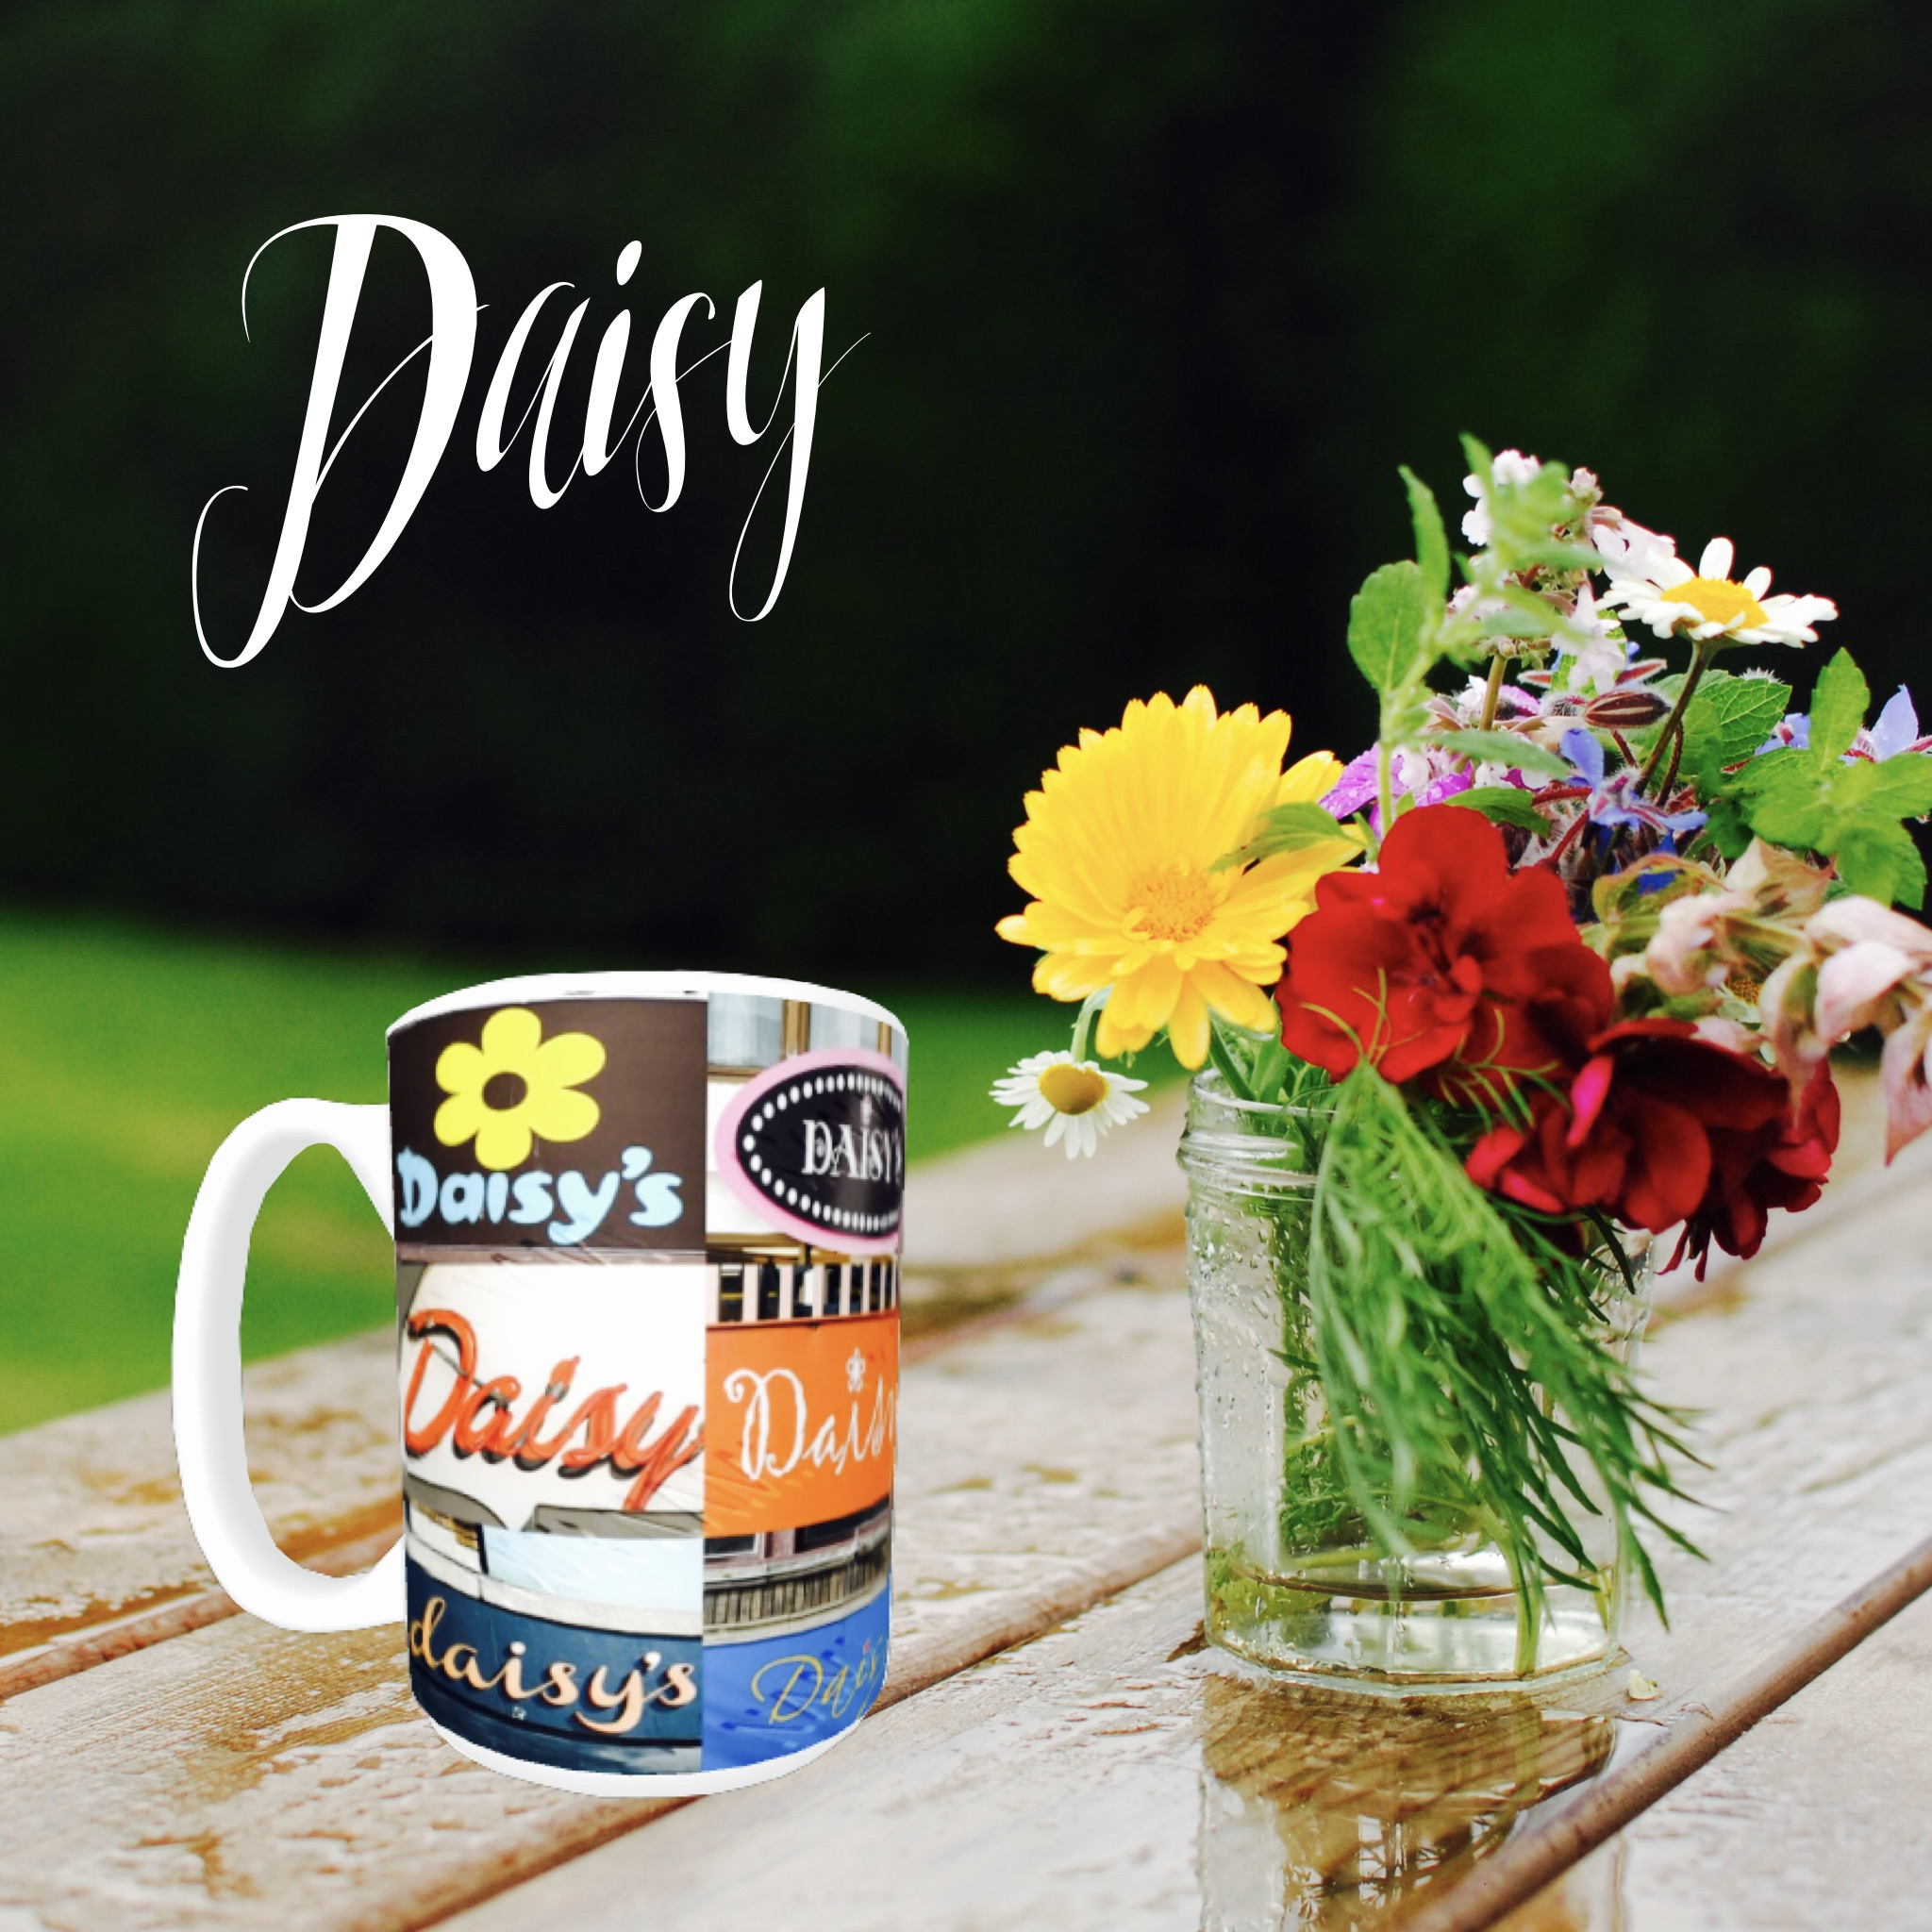 https://www.etsy.com/listing/266166074/personalized-coffee-mug-featuring-the